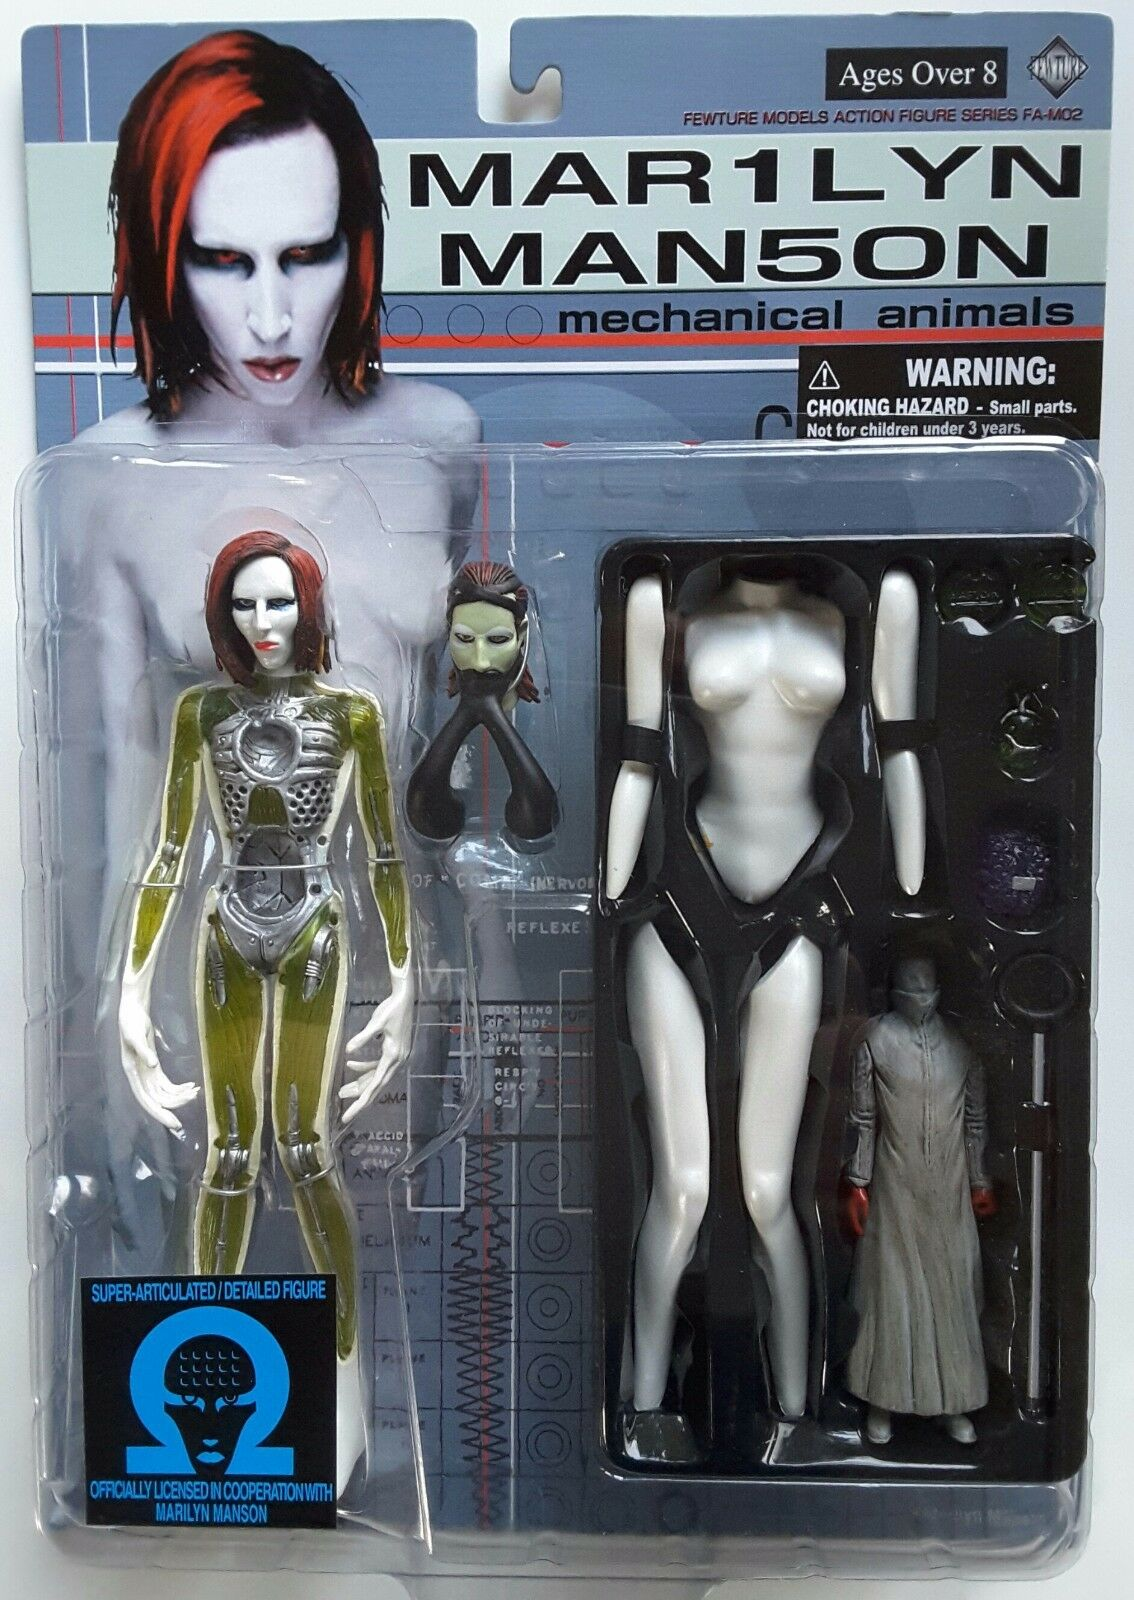 MARILYN MANSON Mechanical Animals Action Figure from The Dope Show - LAST ONE